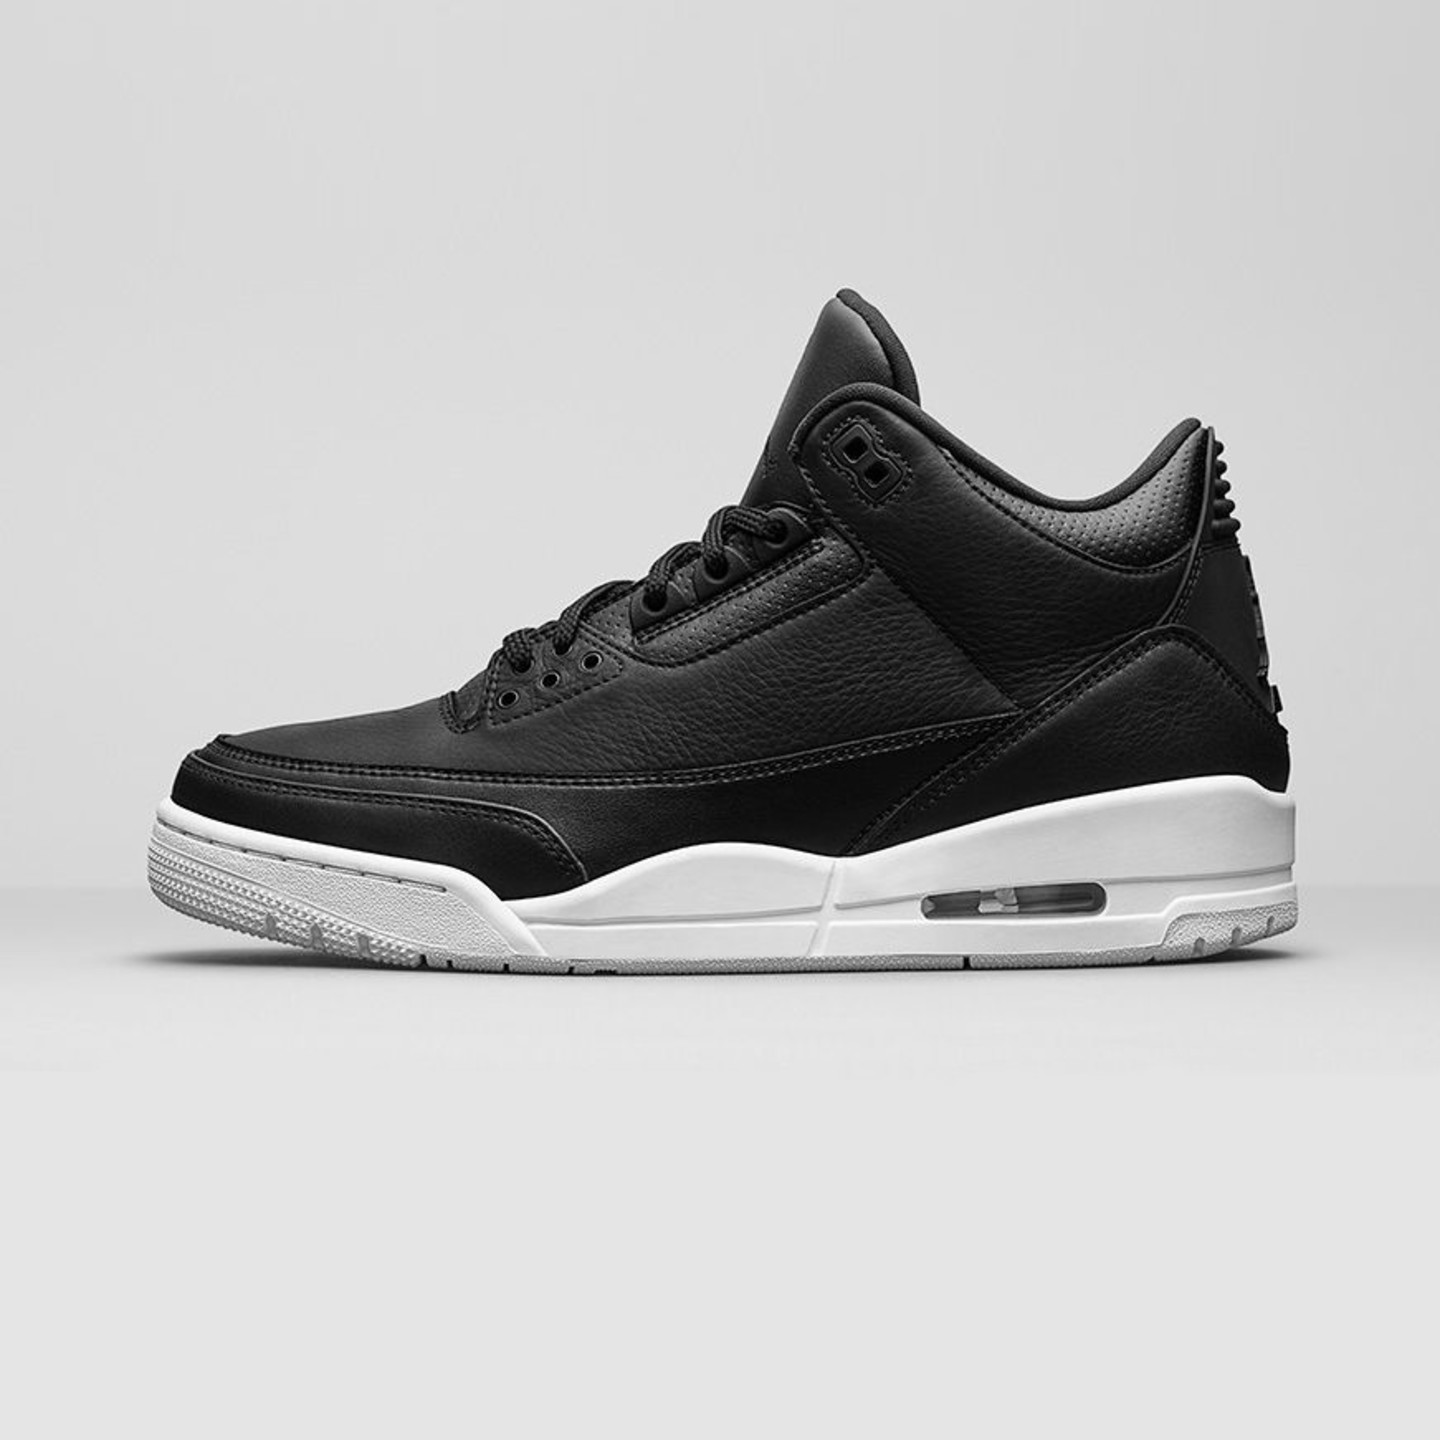 Jordan Air Jordan 3 Retro 'Cyber Monday' Black / White 136064-020-45.5